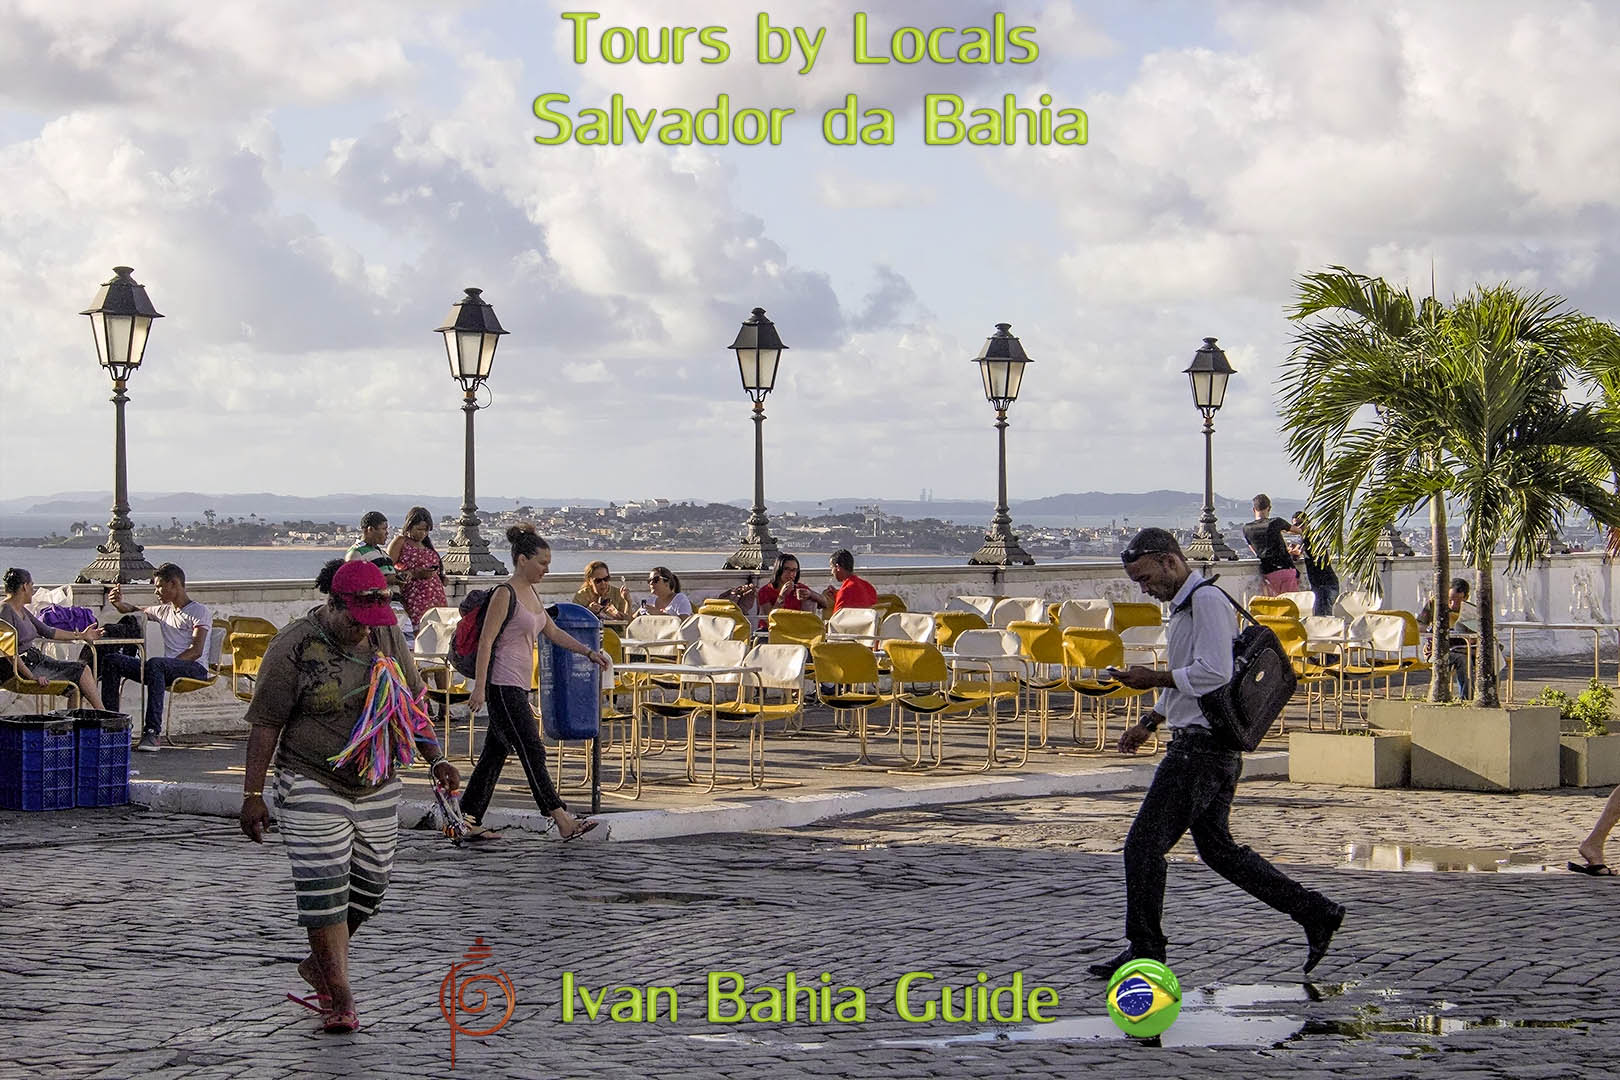 Discover Bahia with Ivan Bahia private tour-guide / travel agency, for the best experience in Salvador, Chapada Diamantina National Park and Bahia /NE-Brazil - Photography by Ivan Bahia Guide, traveling in Brazil, reisgids in Brazilie, #BahiaMetisse,#FernandoBingre,#SalvadorFoto,#SalvadorBahiaBrazil,SalvadorBahiaTourism,#IvanBahiaGuide,#IvanSalvadorBahia,#SalvadorBahiaTravel.